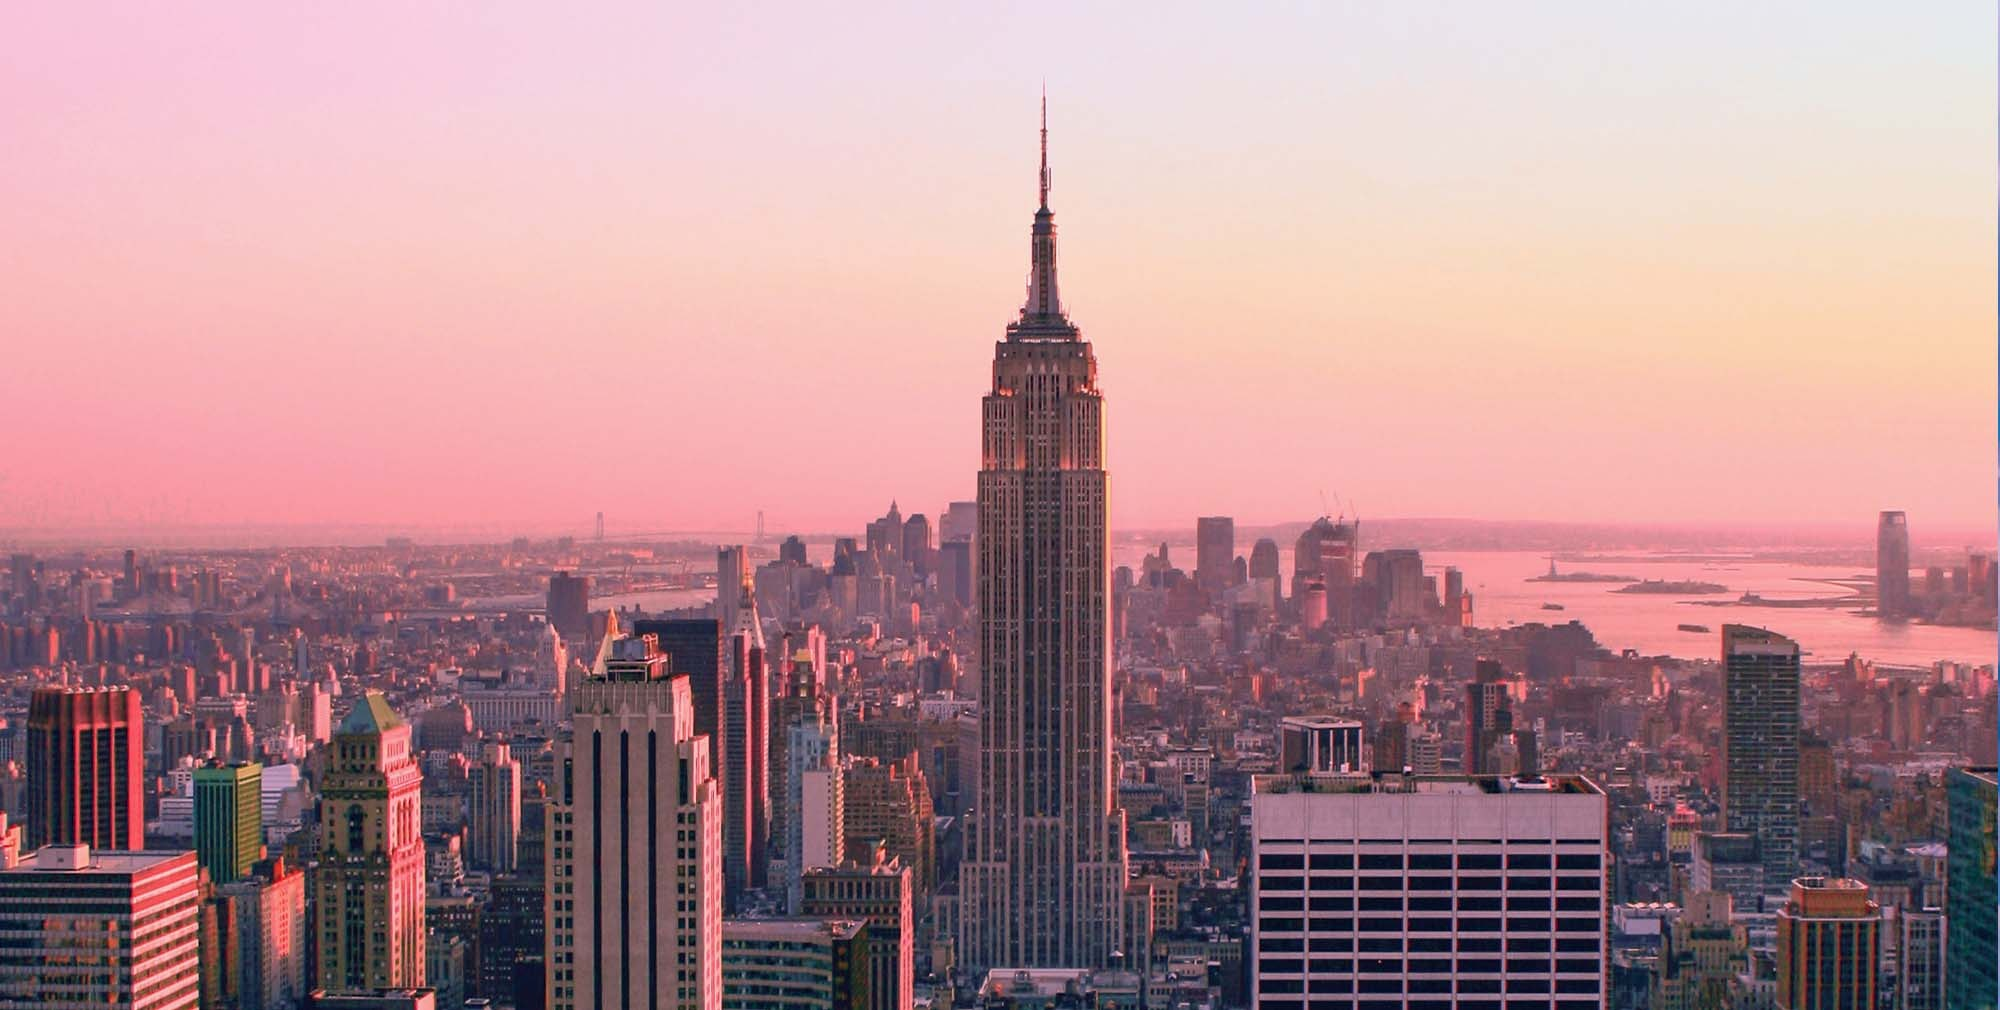 New York City Skyline at sunset, centered on the Empire State Building facing south